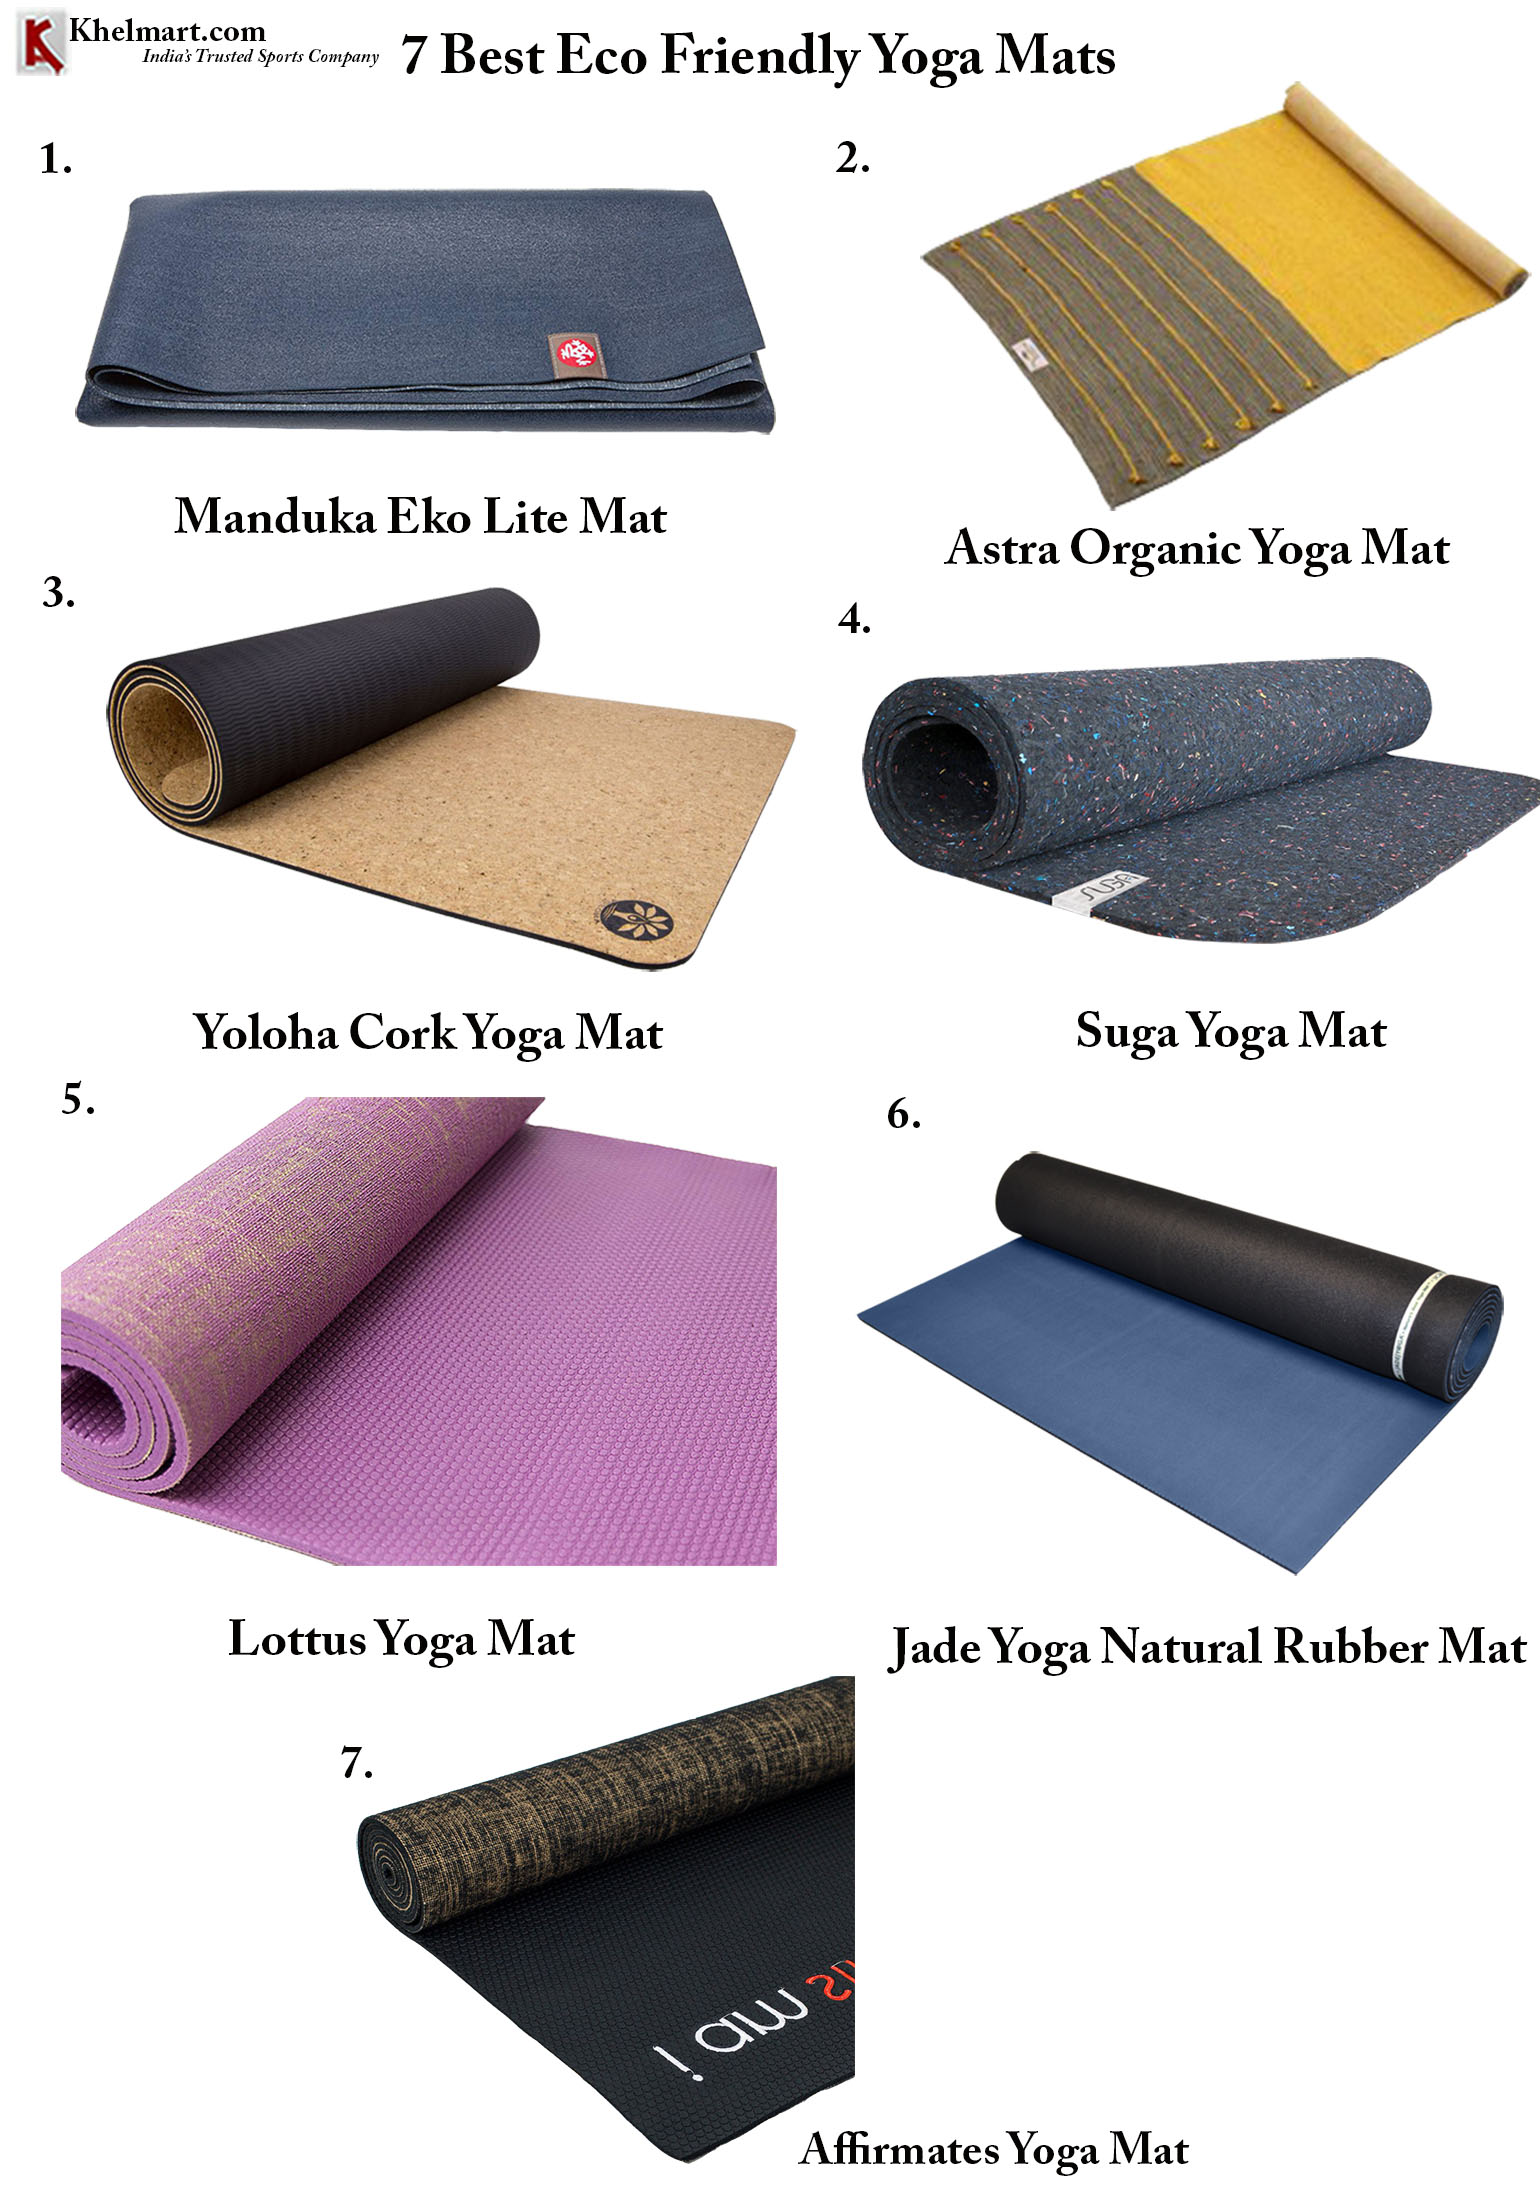 7 Best Eco Friendly Yoga Mats Khelmart Blogs It S All About Sports